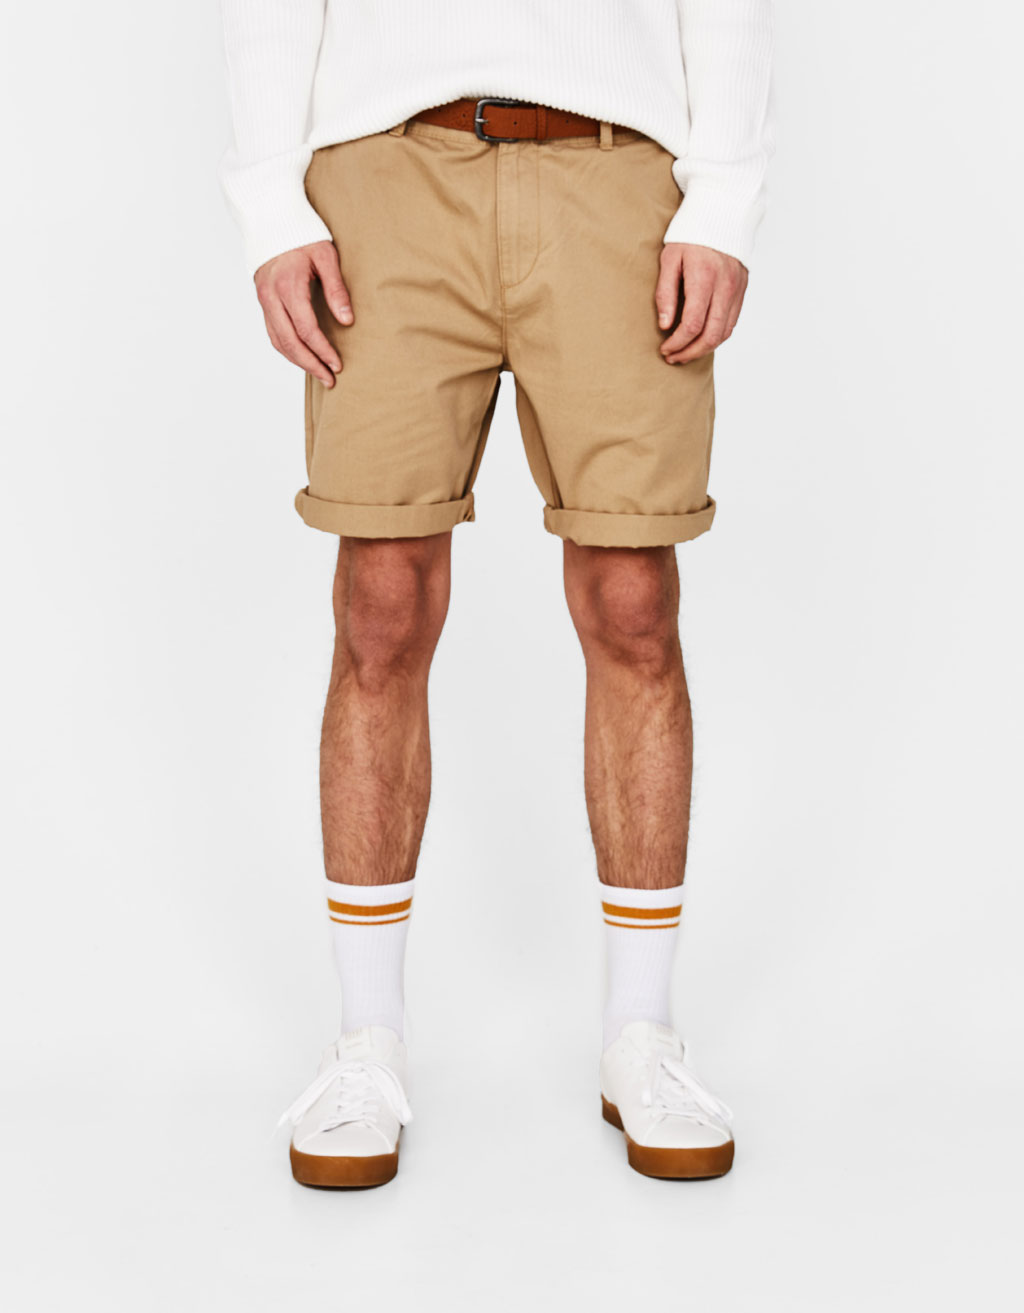 Bermuda shorts with belt